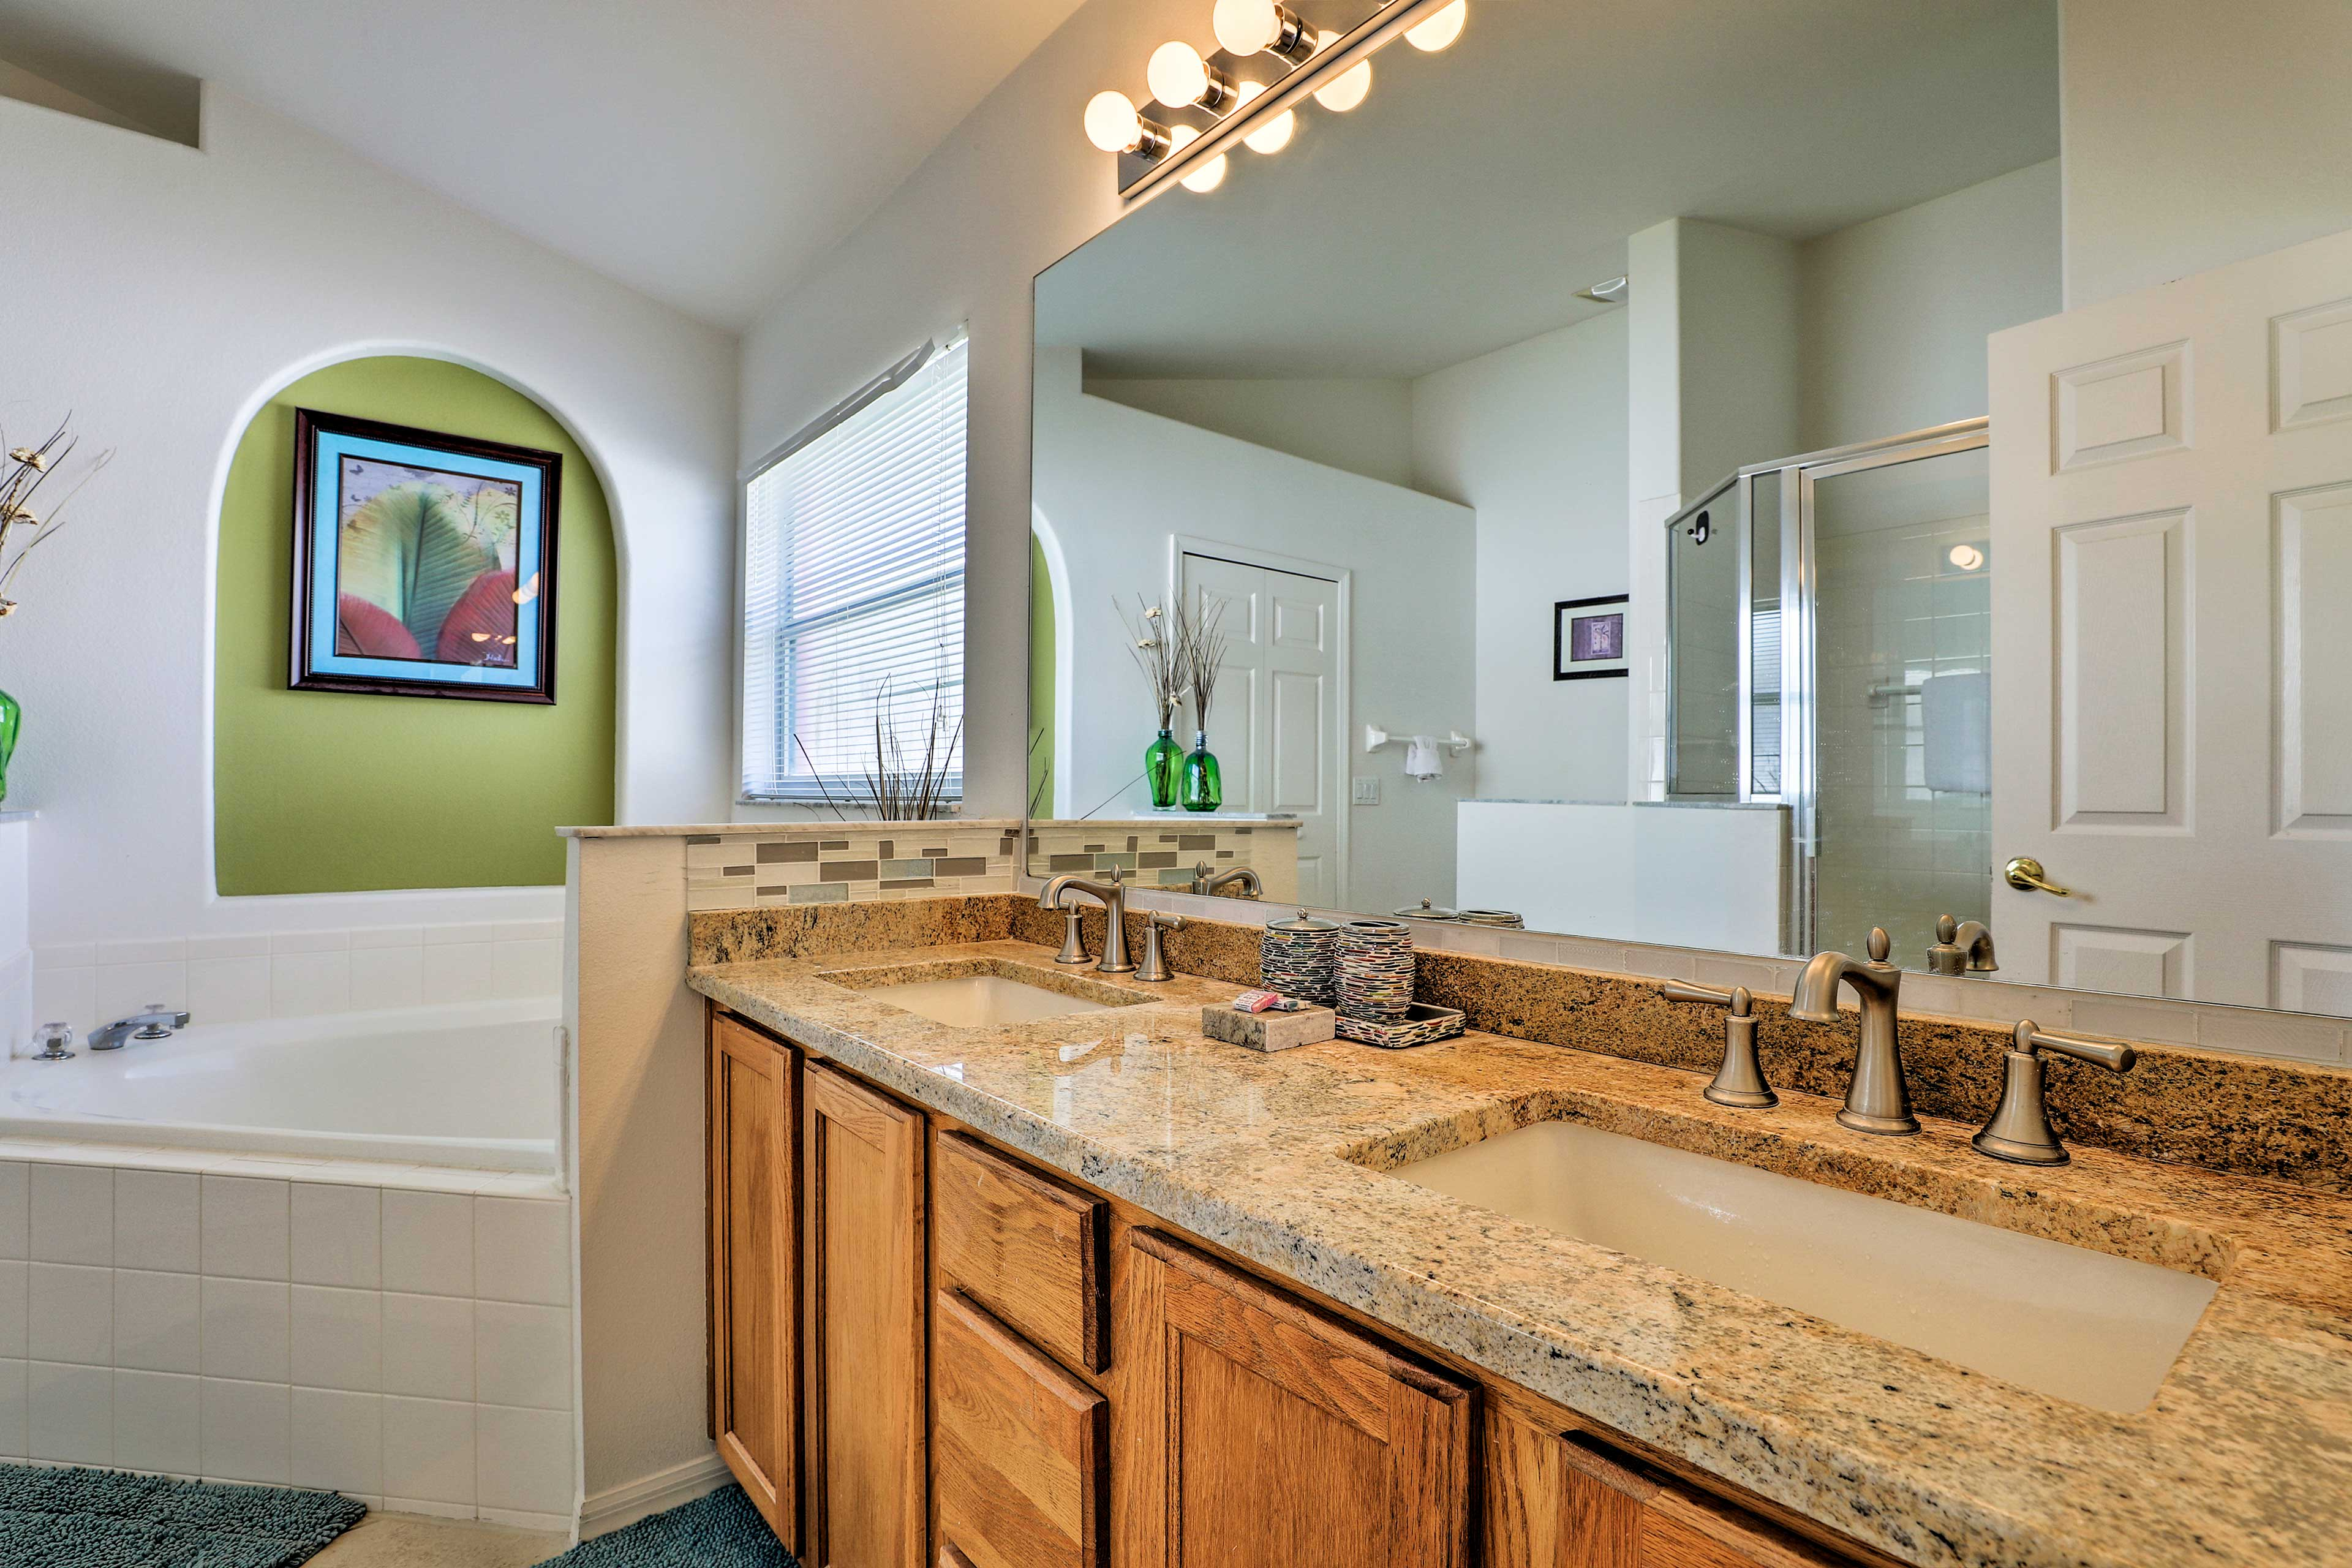 There is room for 2 to get ready in this bathroom!